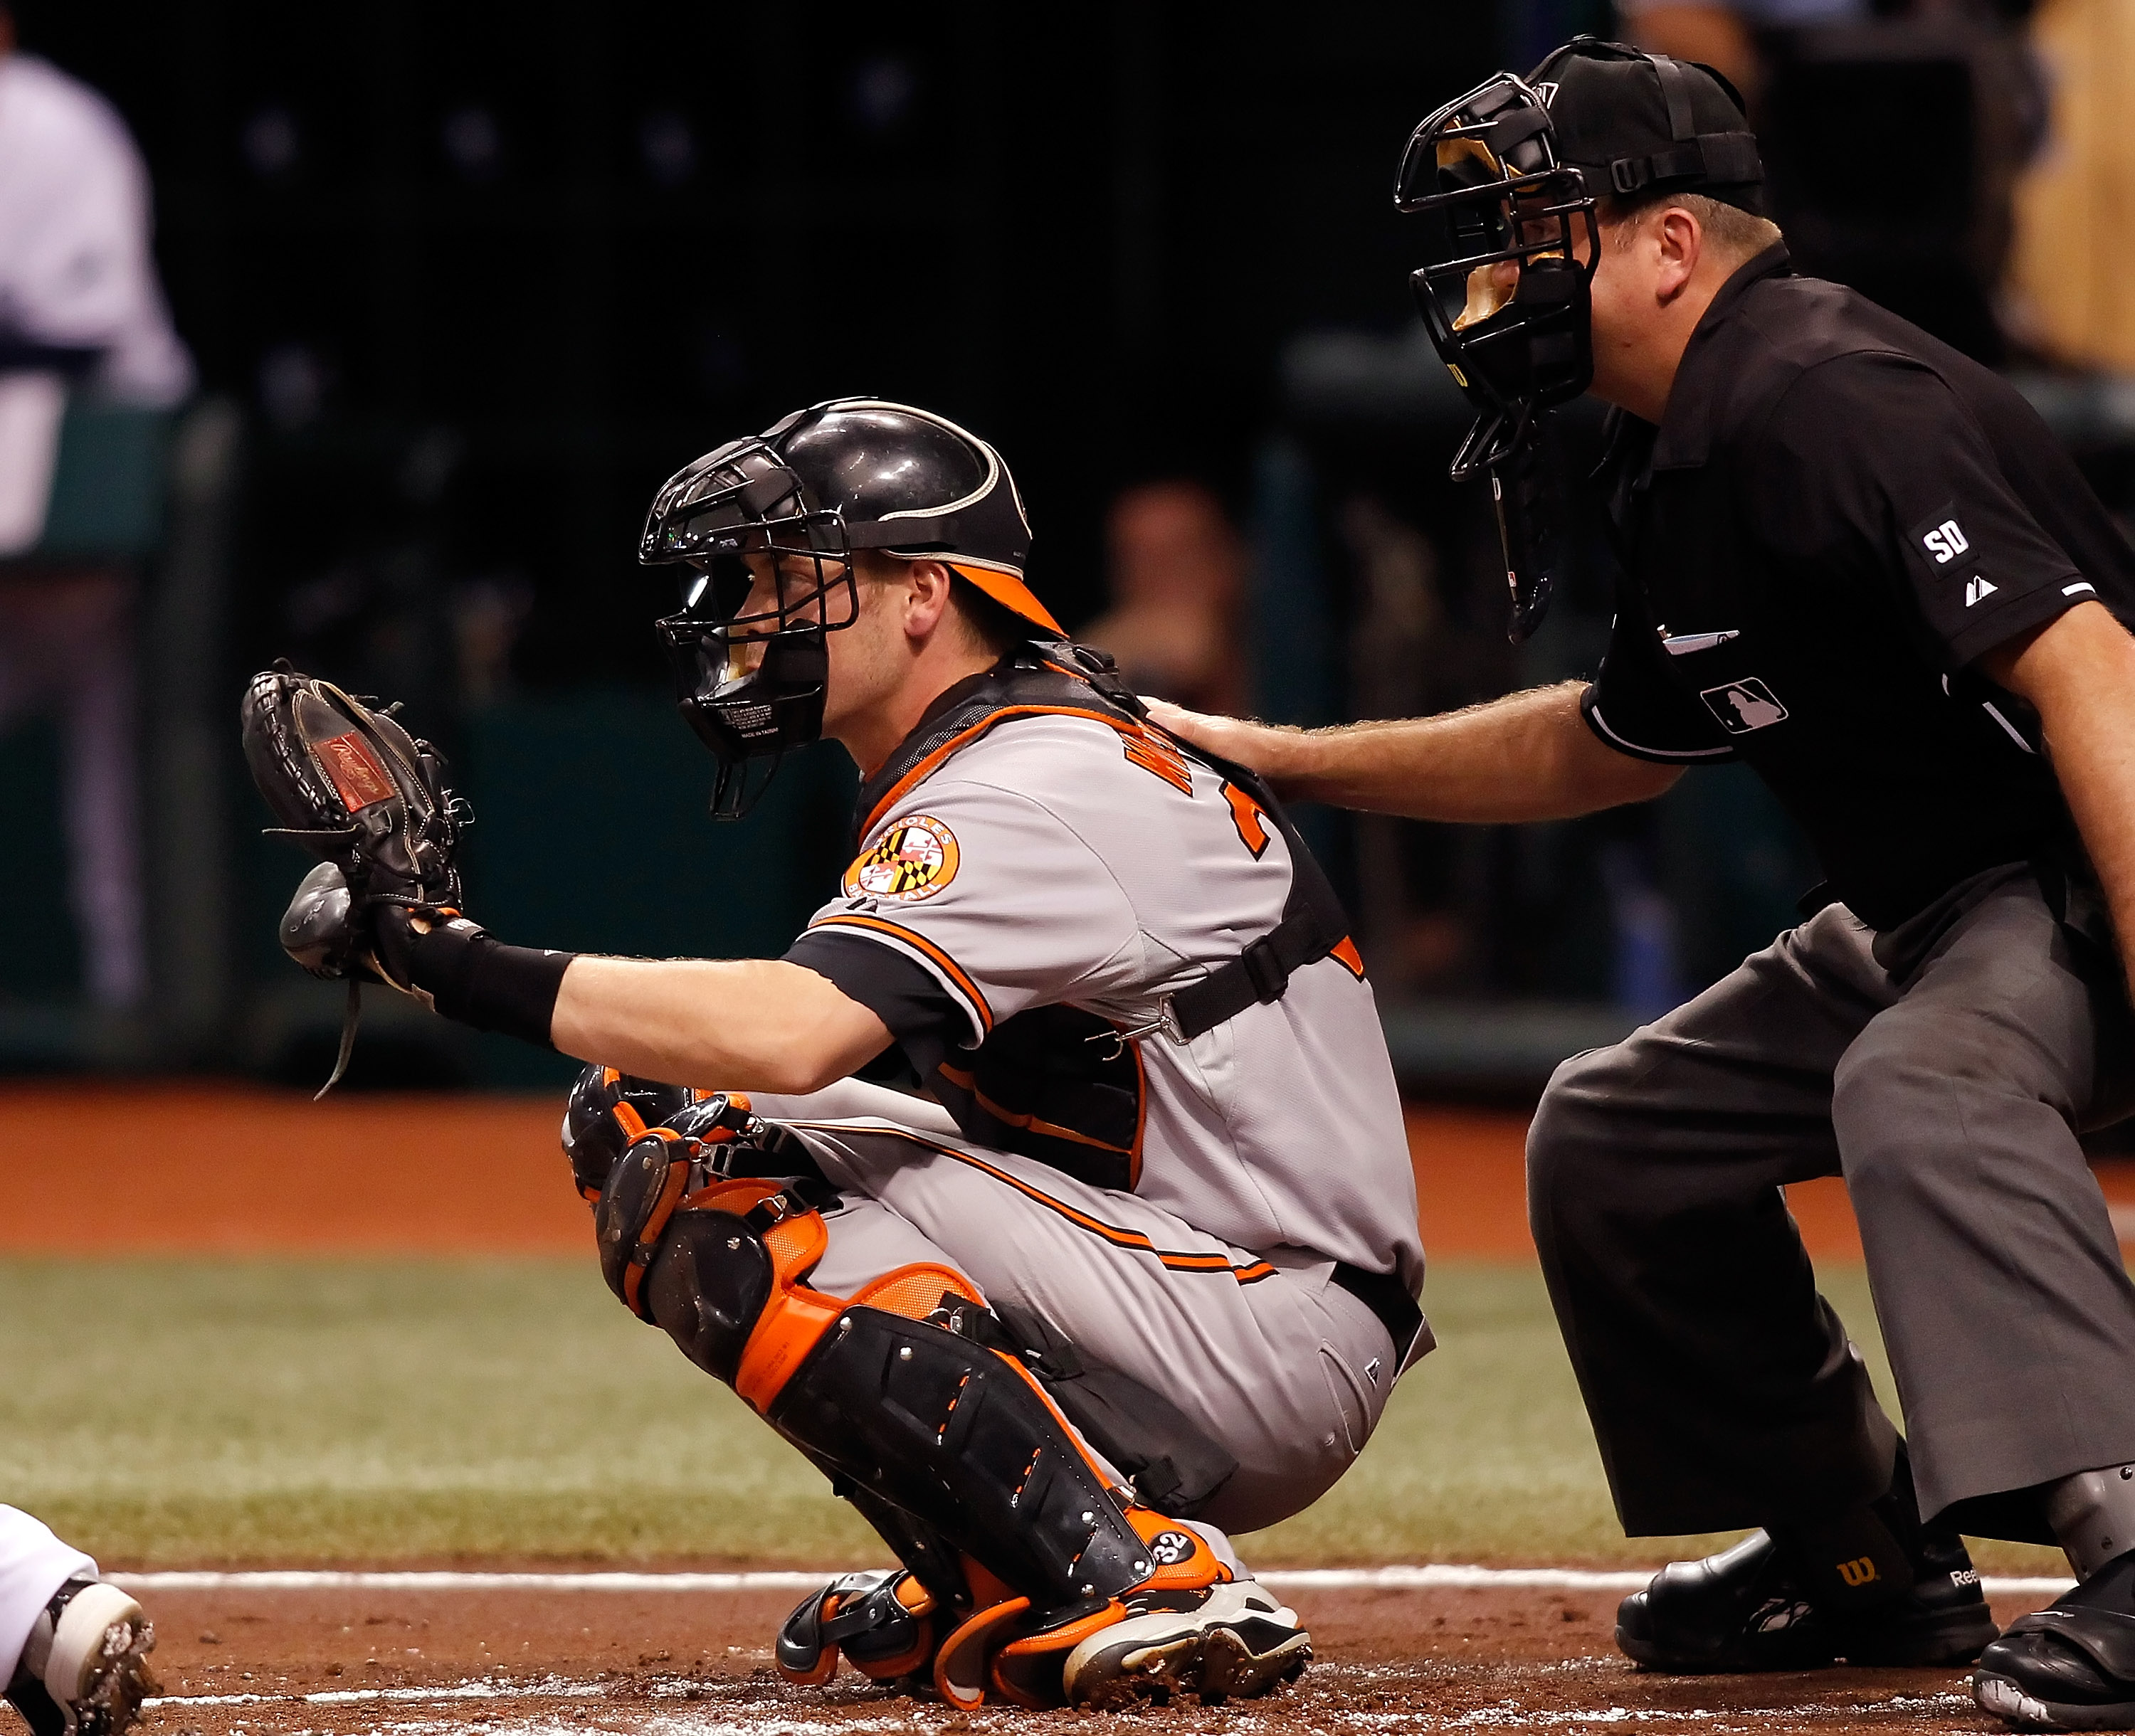 ST PETERSBURG, FL - SEPTEMBER 27:  Catcher Matt Wieters #32 of the Baltimore Orioles kneels behind homeplate against the Tampa Bay Rays during the game at Tropicana Field on September 27, 2010 in St. Petersburg, Florida.  (Photo by J. Meric/Getty Images)